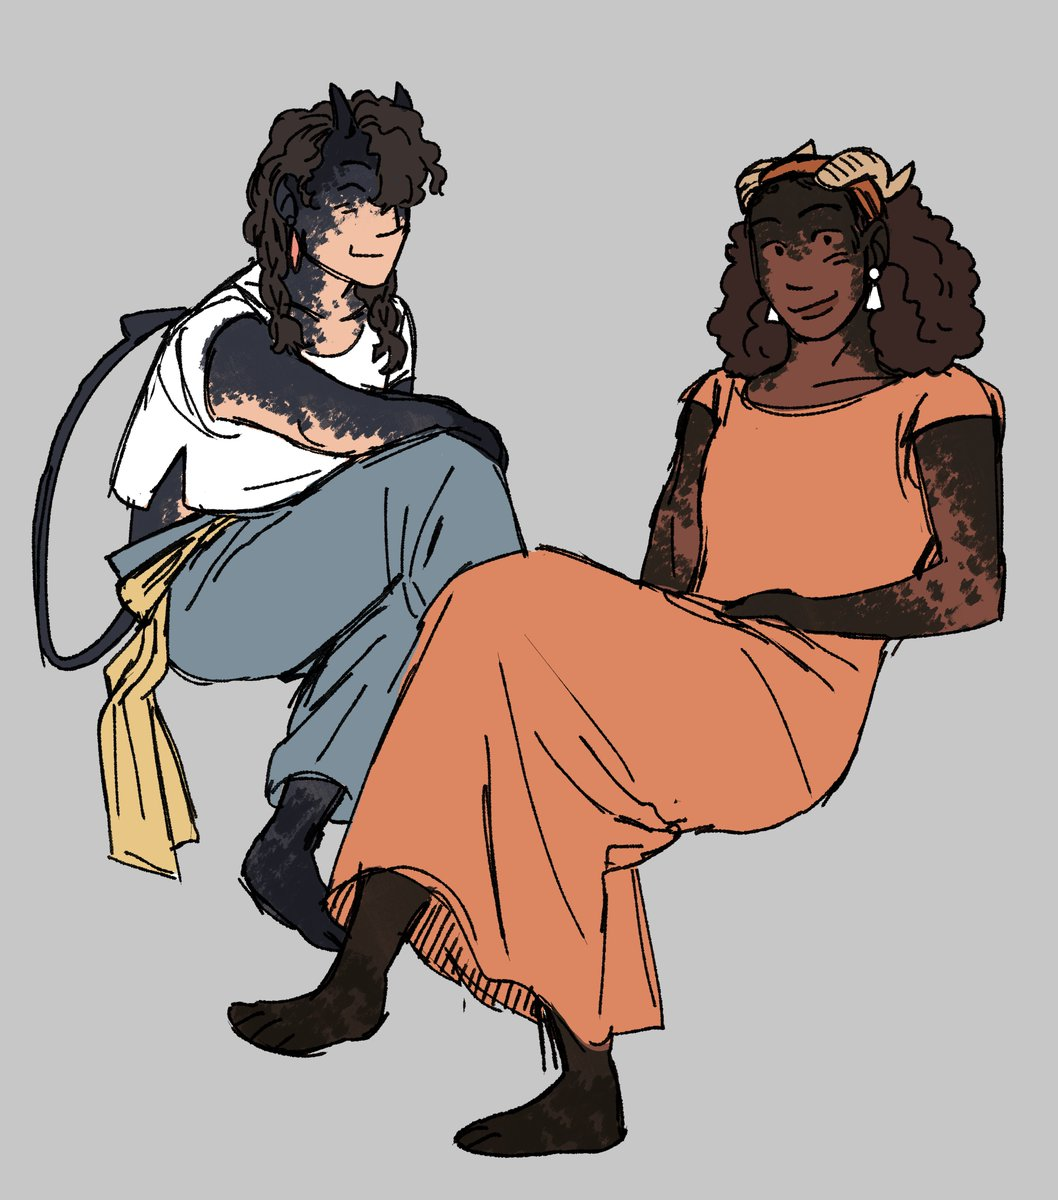 #VisibleNonbinary  Im Izzy and all I draw are little fantasy people